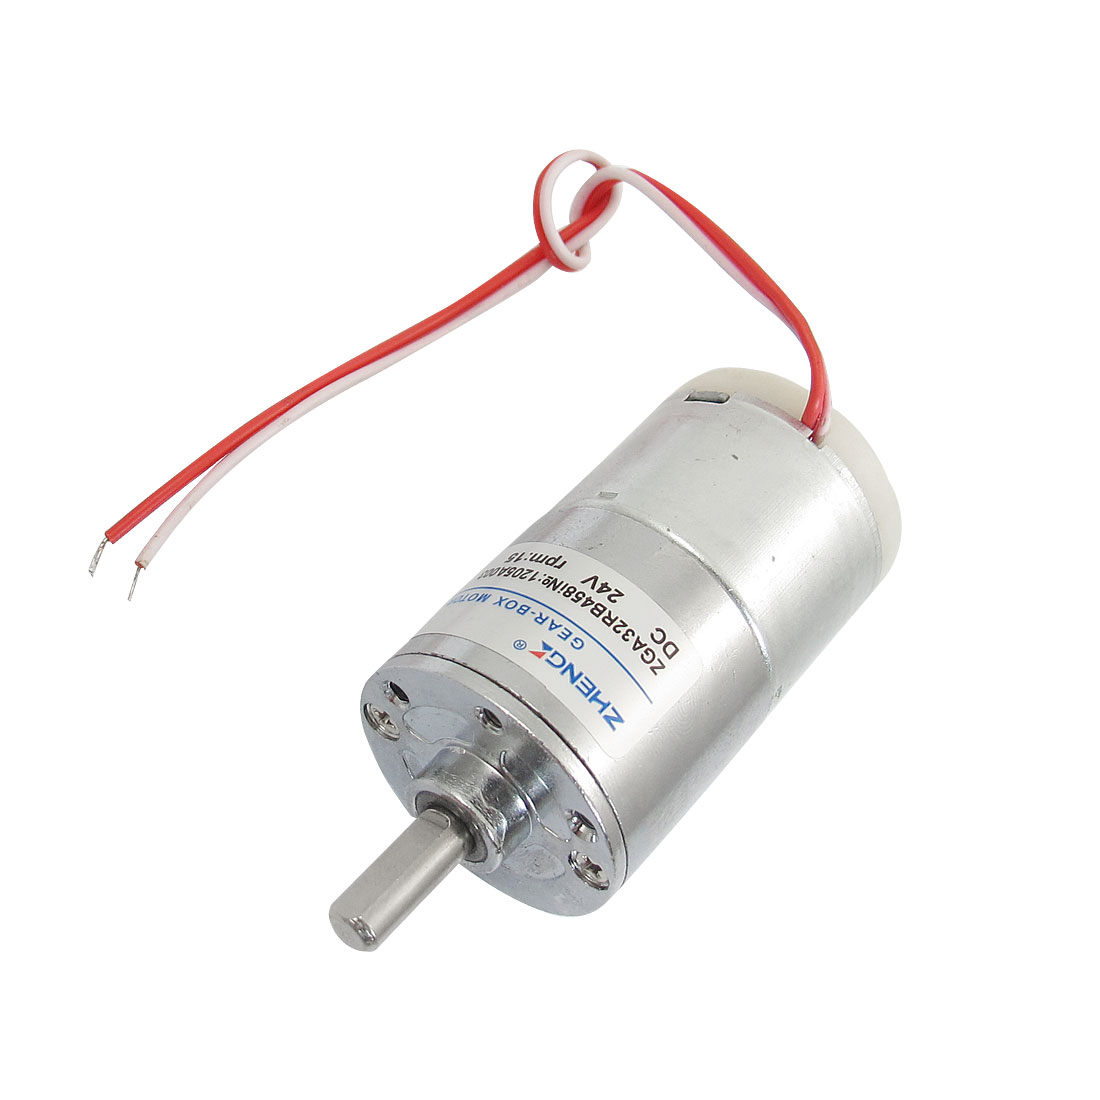 Wired 6mm Shaft Diameter Electric Oven Geared Motor 24VDC 15RPM